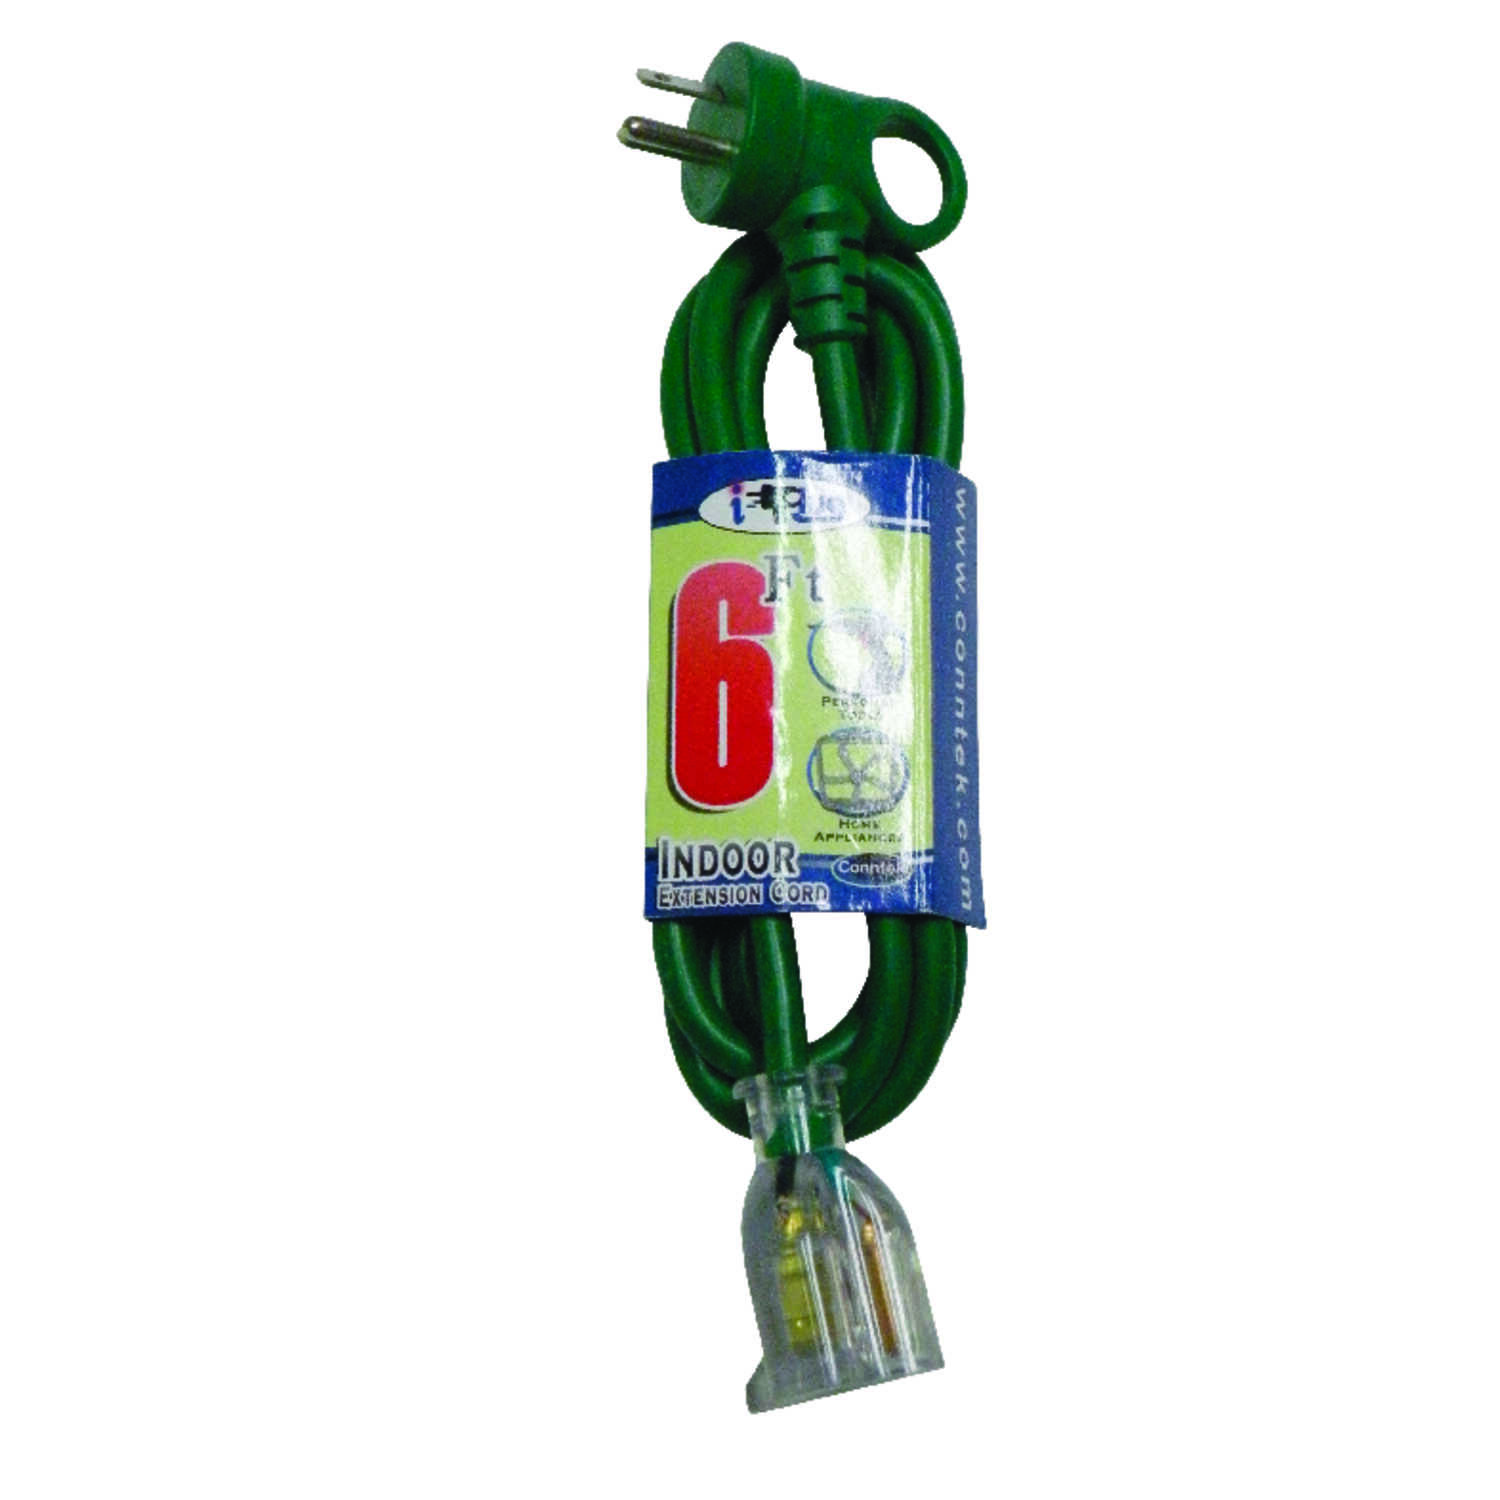 Conntek  Extension Cord  16/3 SJT  6 ft. L Green